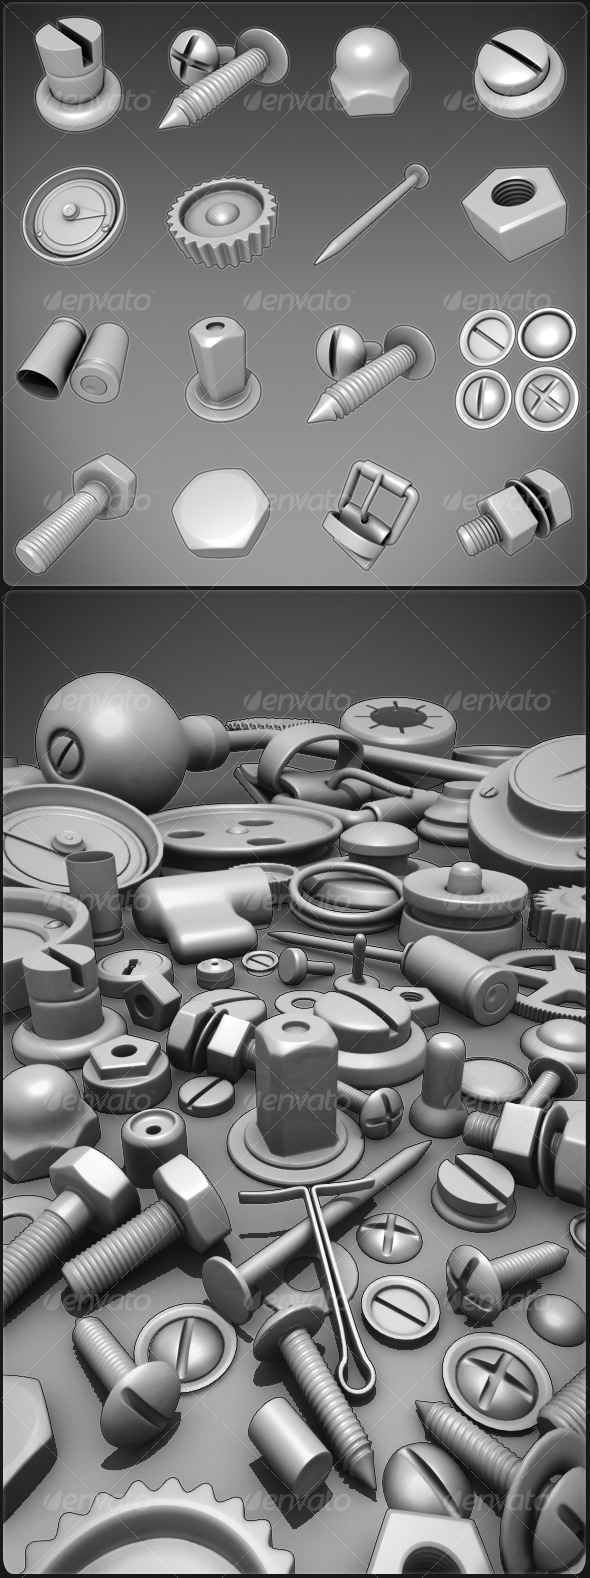 Nuts, Bolts, Screws, Misc. - 3DOcean Item for Sale